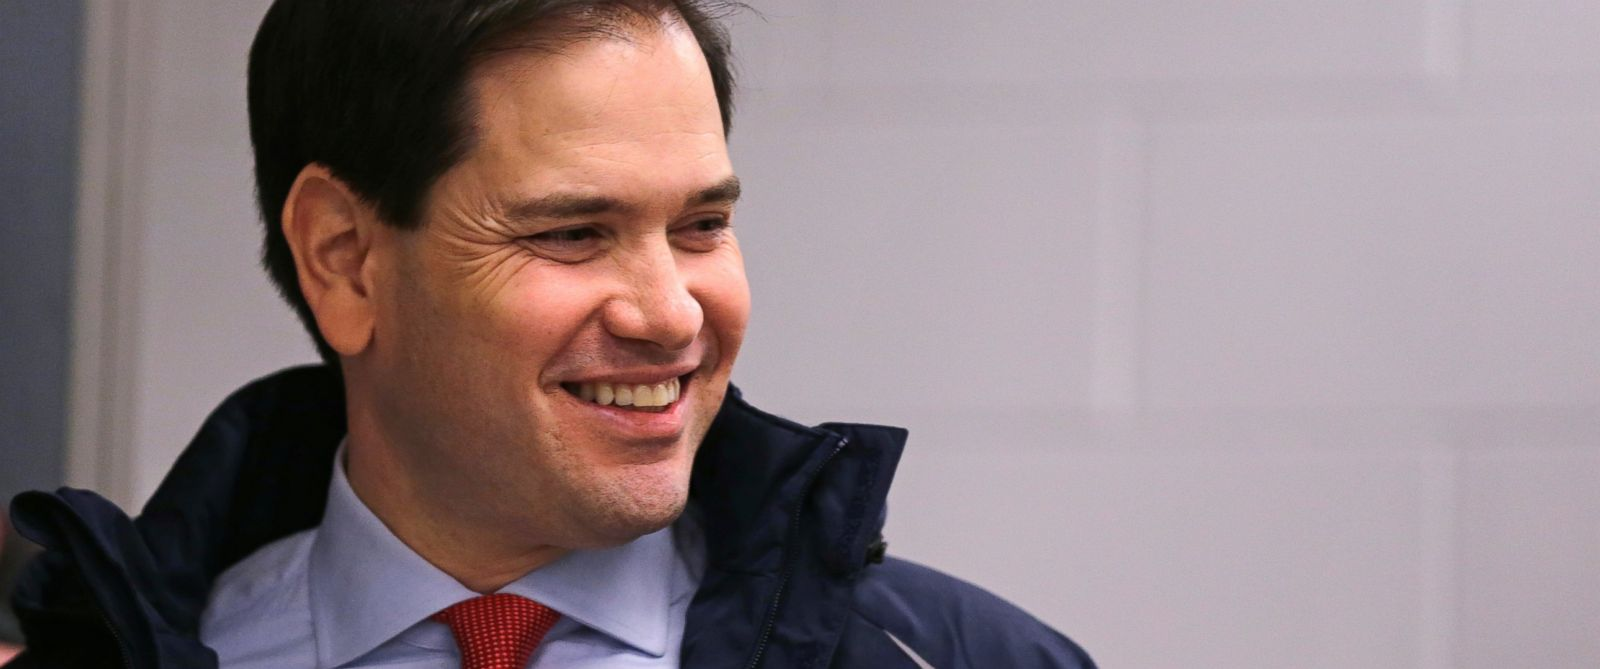 PHOTO: Republican presidential candidate, Sen. Marco Rubio, R-Fla. smiles as he arrives for a campaign stop at a welding company in Brookline, N.H., Jan. 21, 2016.